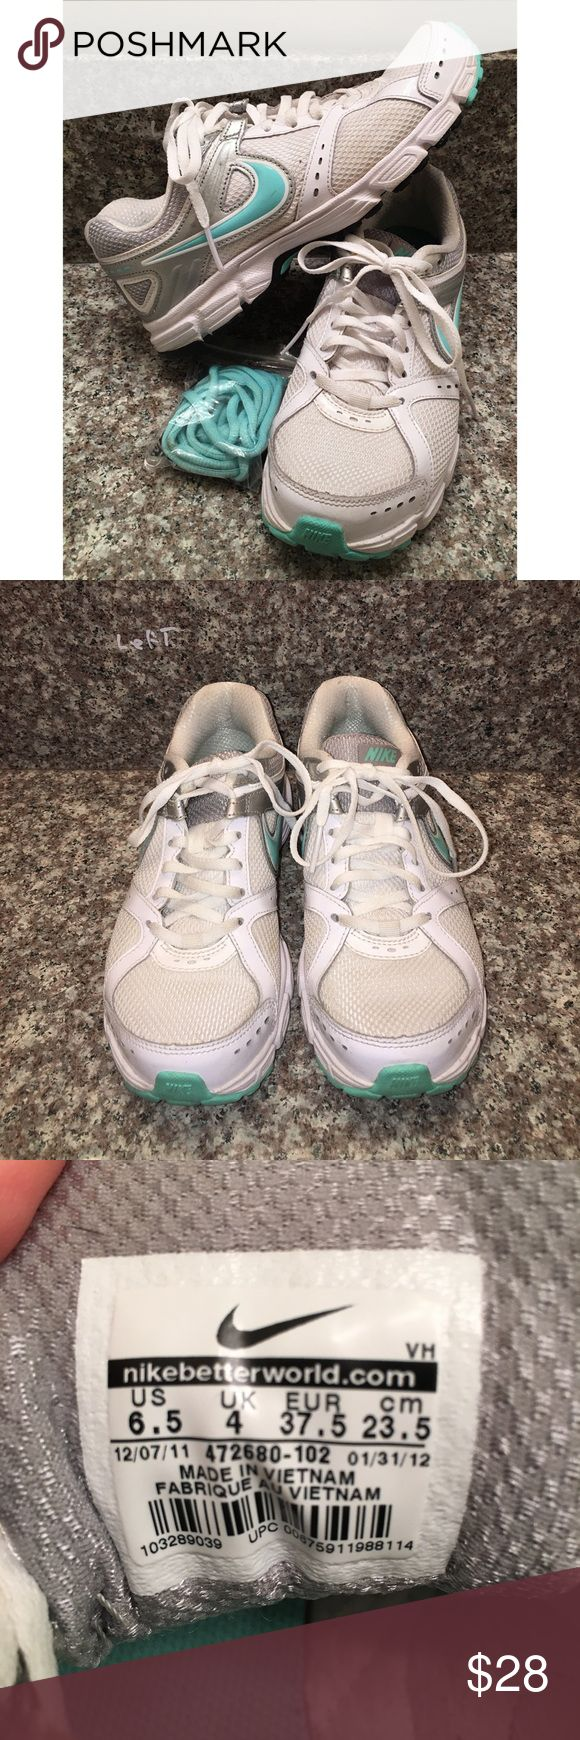 NIKE downshifter 472680 LADIES running shoes 6.5 These are the nike downshifter 472680 running shoes in a sz 6.5❤good used condition with extra laces❤the colors are white, silver and mint green❤happy poshing friends! Nike Shoes Athletic Shoes